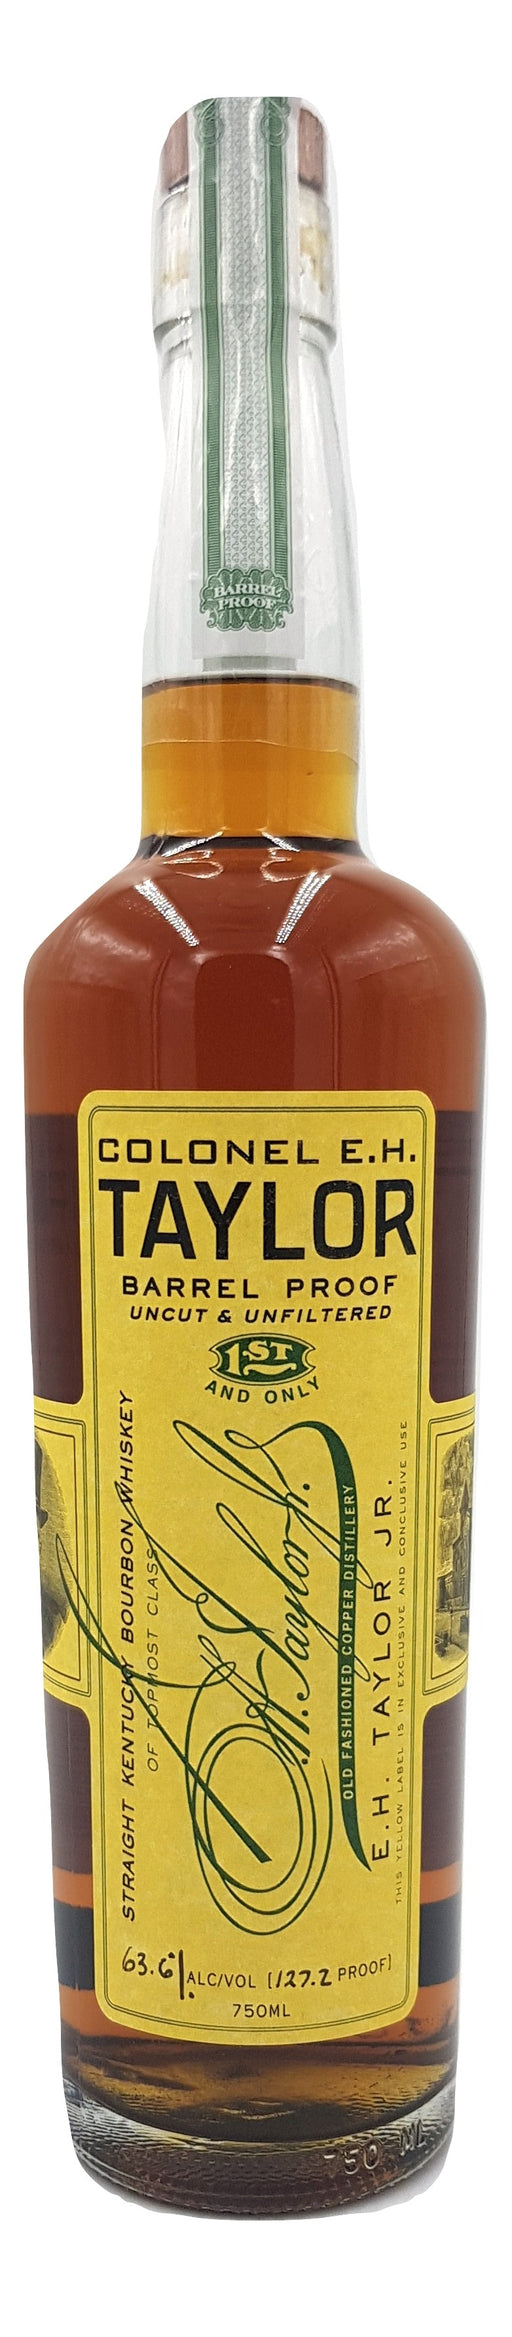 Colonel EH Taylor Barrel Proof 2015 For Sale - NativeSpiritsOnline